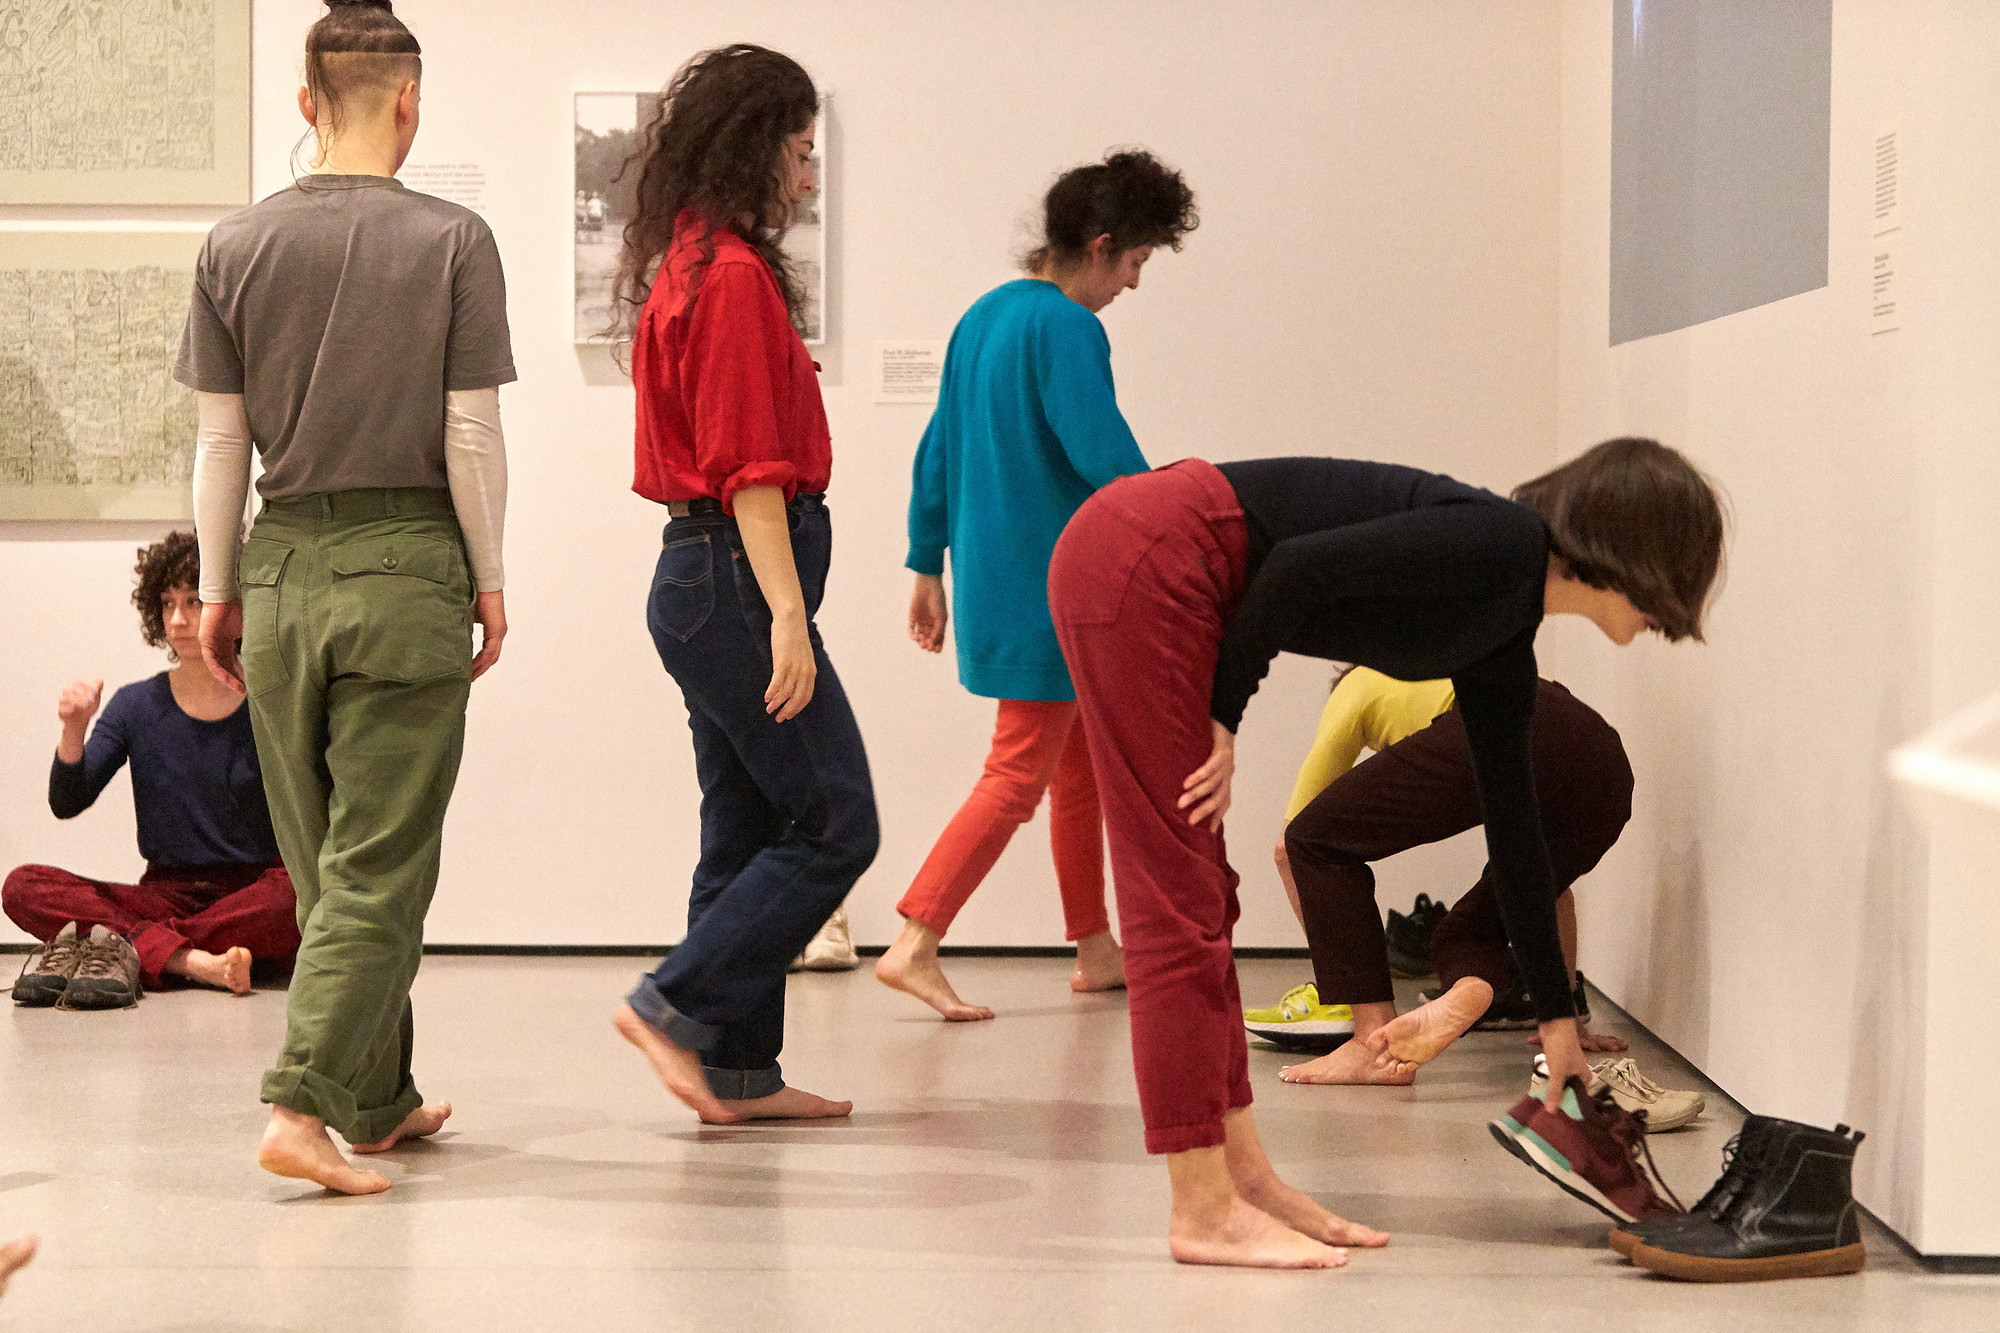 While Huddle is intended to be performed in bare feet, the other Dance Constructions are performed in tennis shoes. Here, the performers put on their shoes and prepare for the remainder of the works.